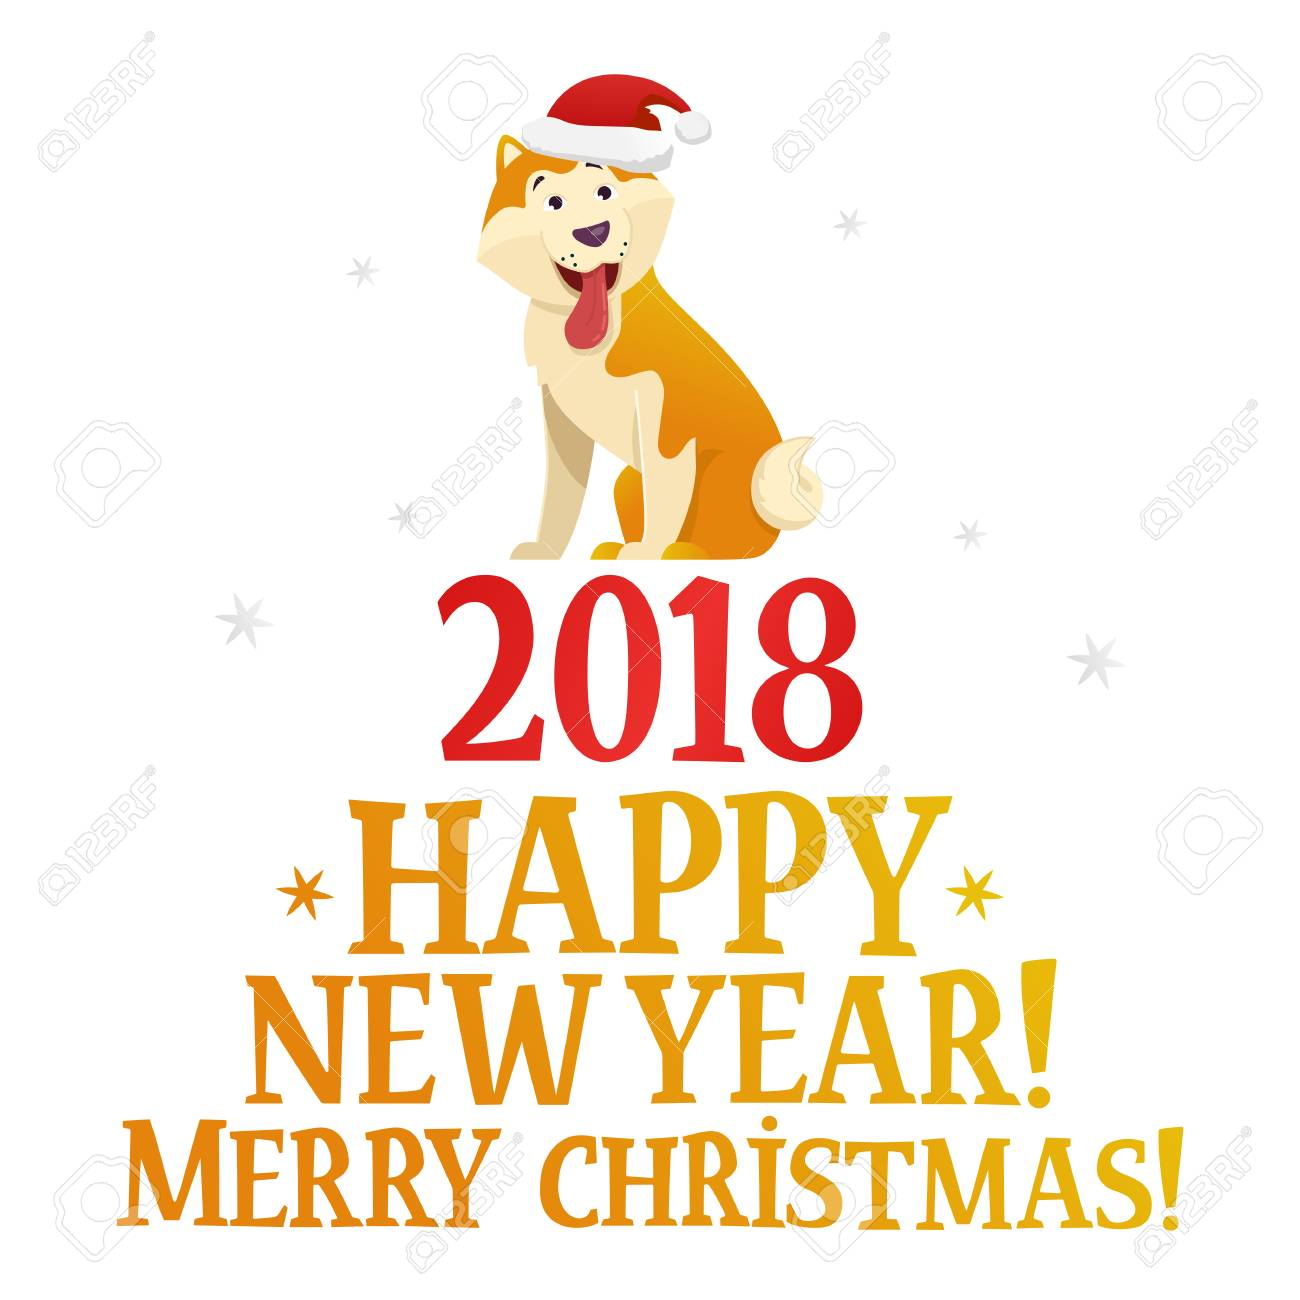 merry christmas and happy new year postcard template with the cute yellow dog stock vector